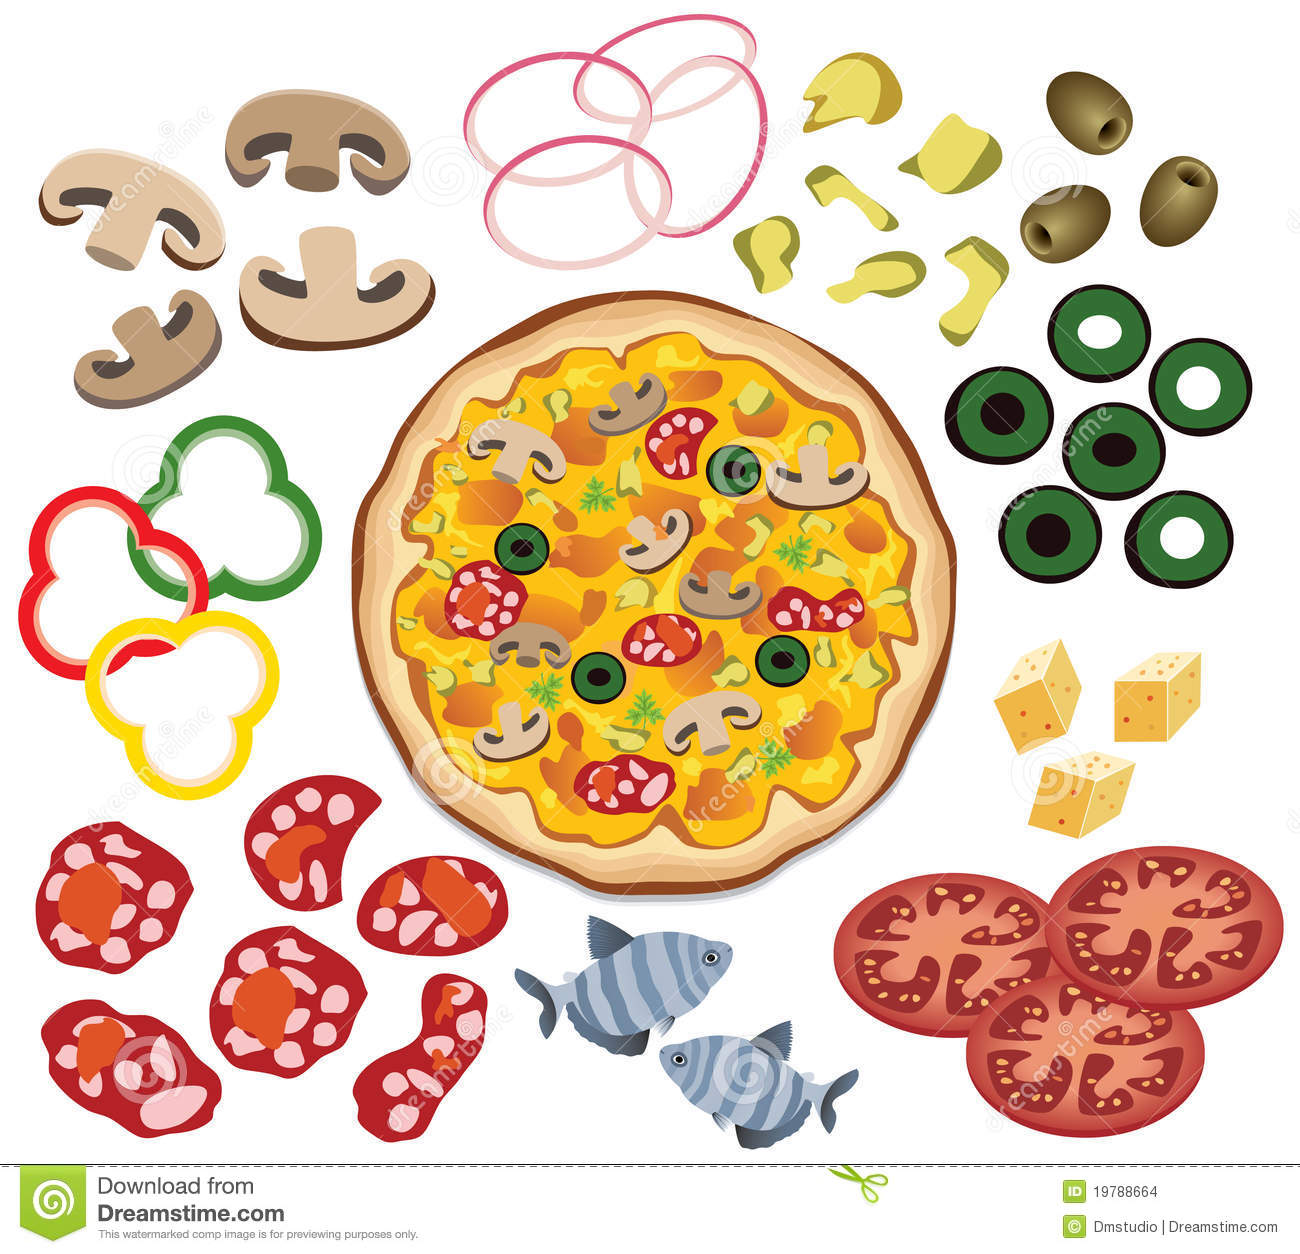 graphic regarding Printable Pizza Toppings named Pizza Toppings Clipart Glimpse At Clip Artwork Photographs - ClipartLook